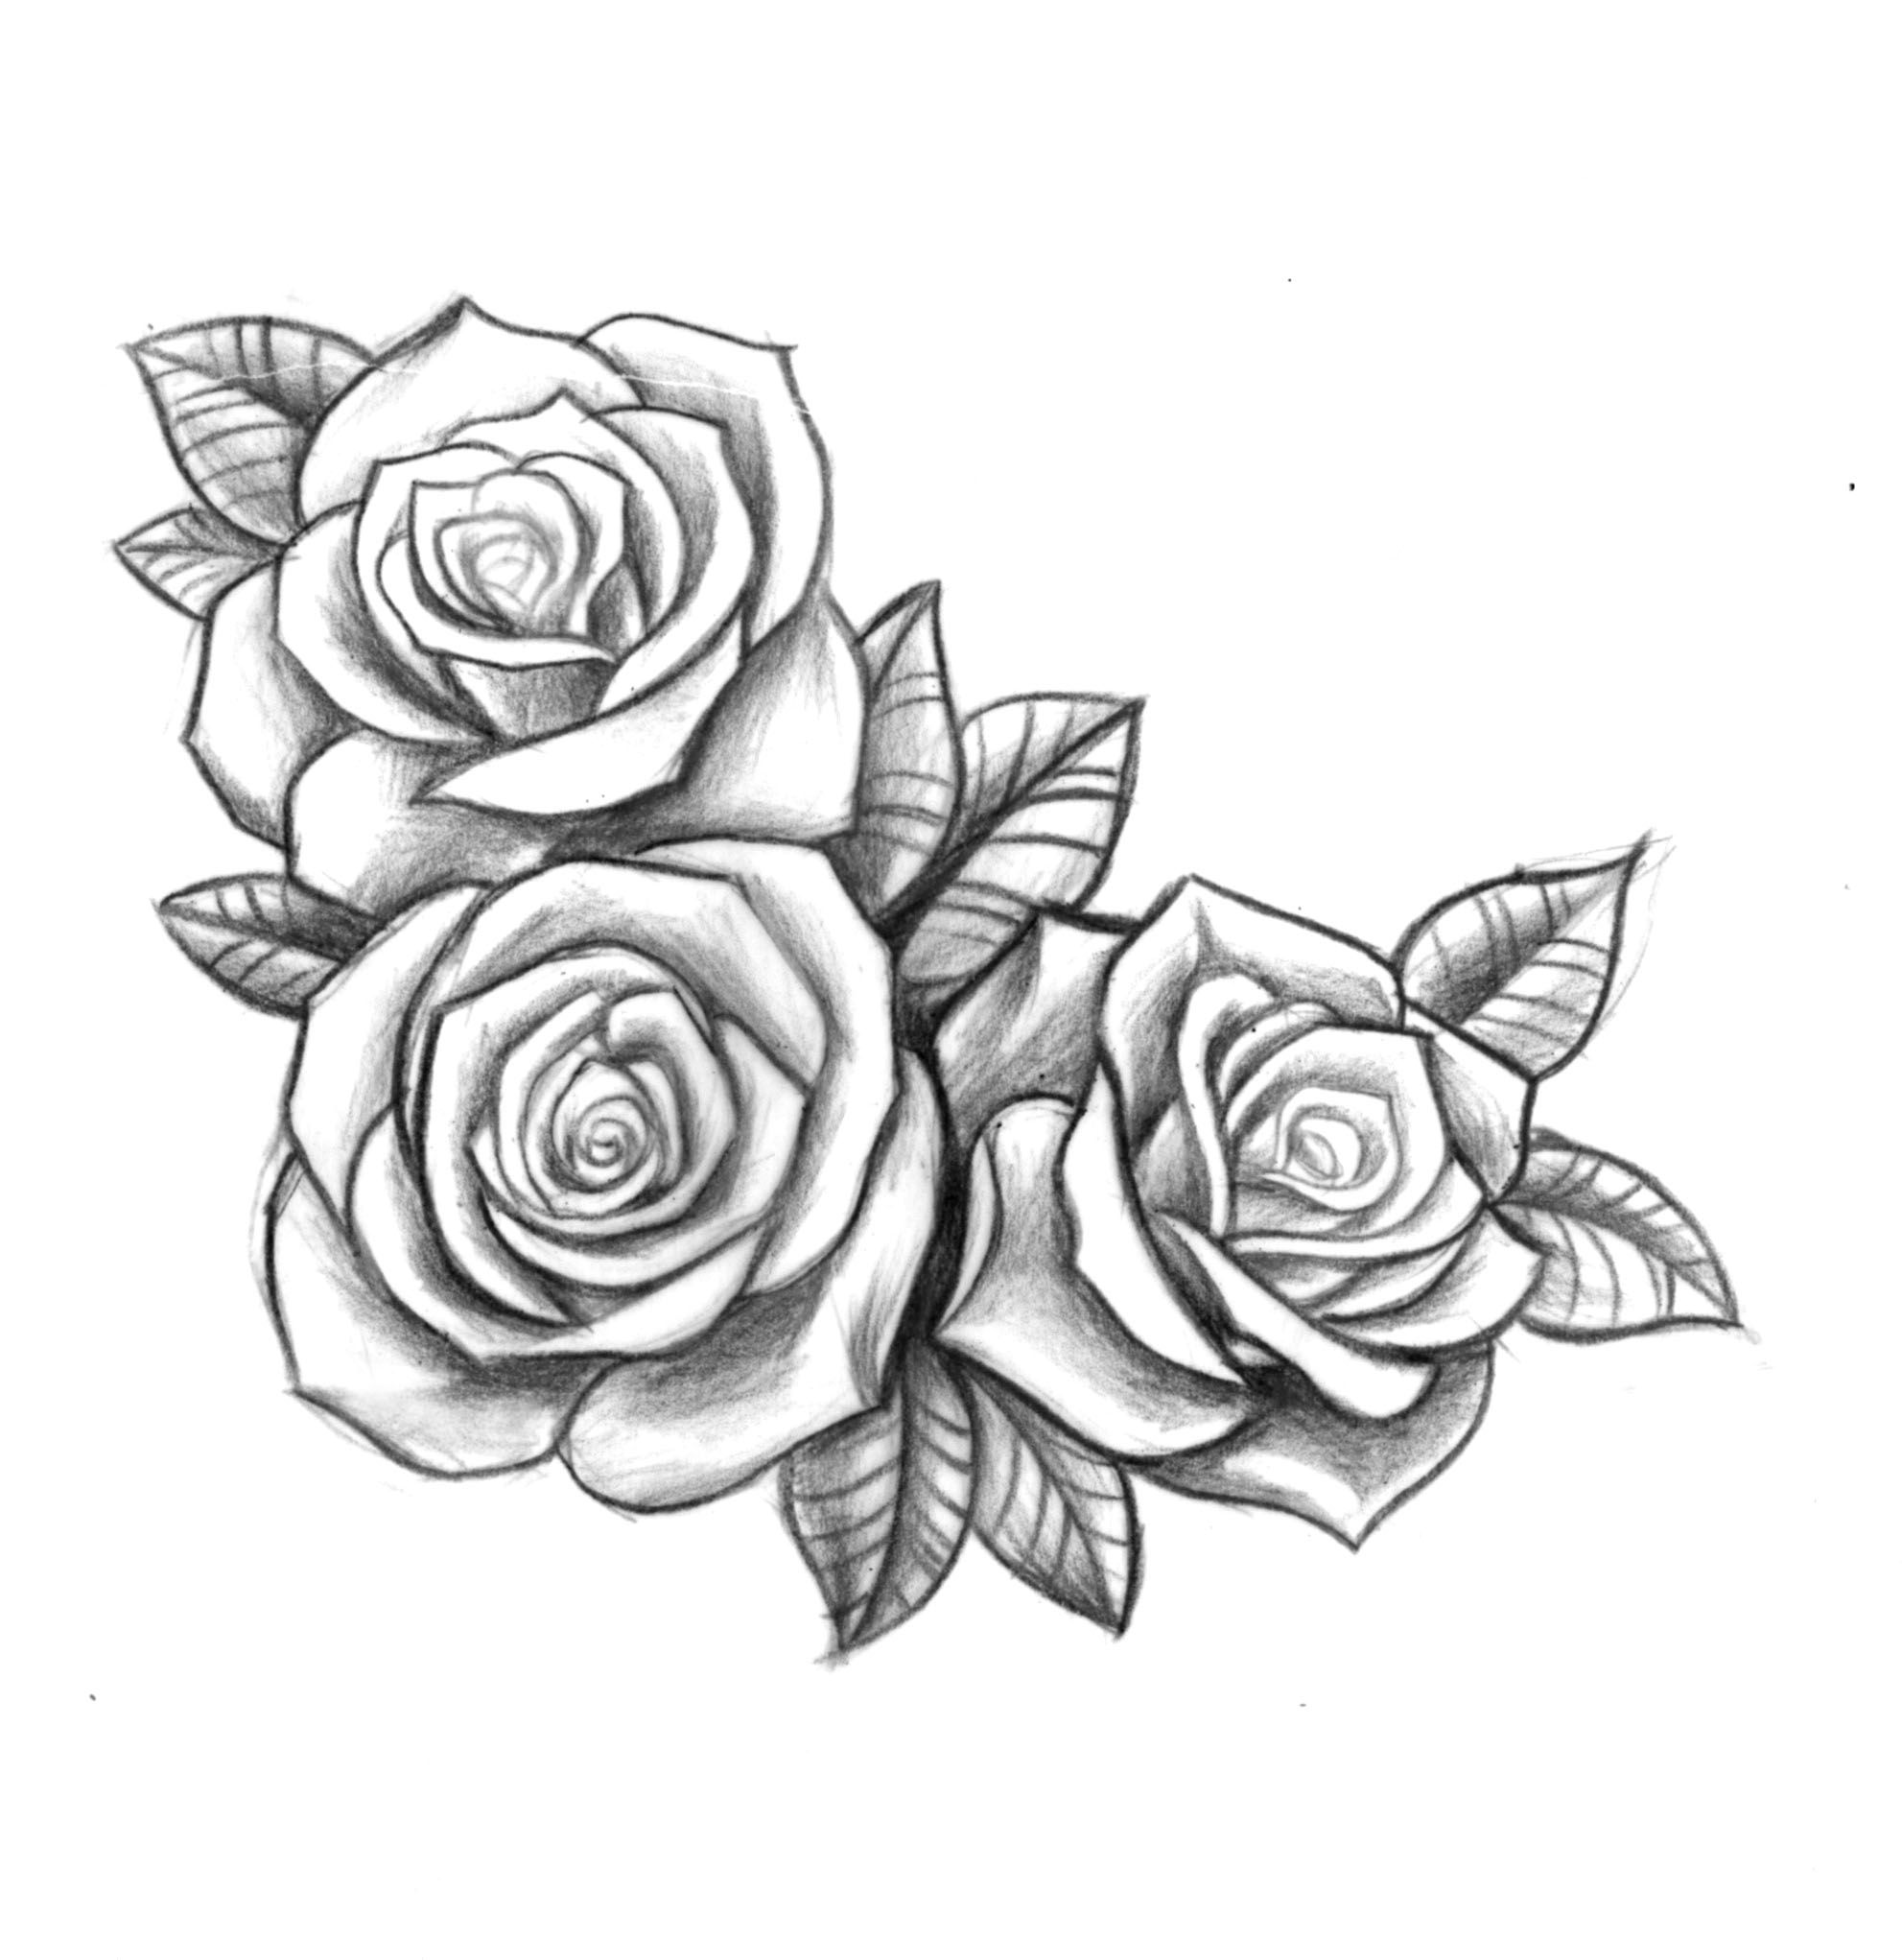 Tattoo Ideas With Roses: Custom Roses For Bec